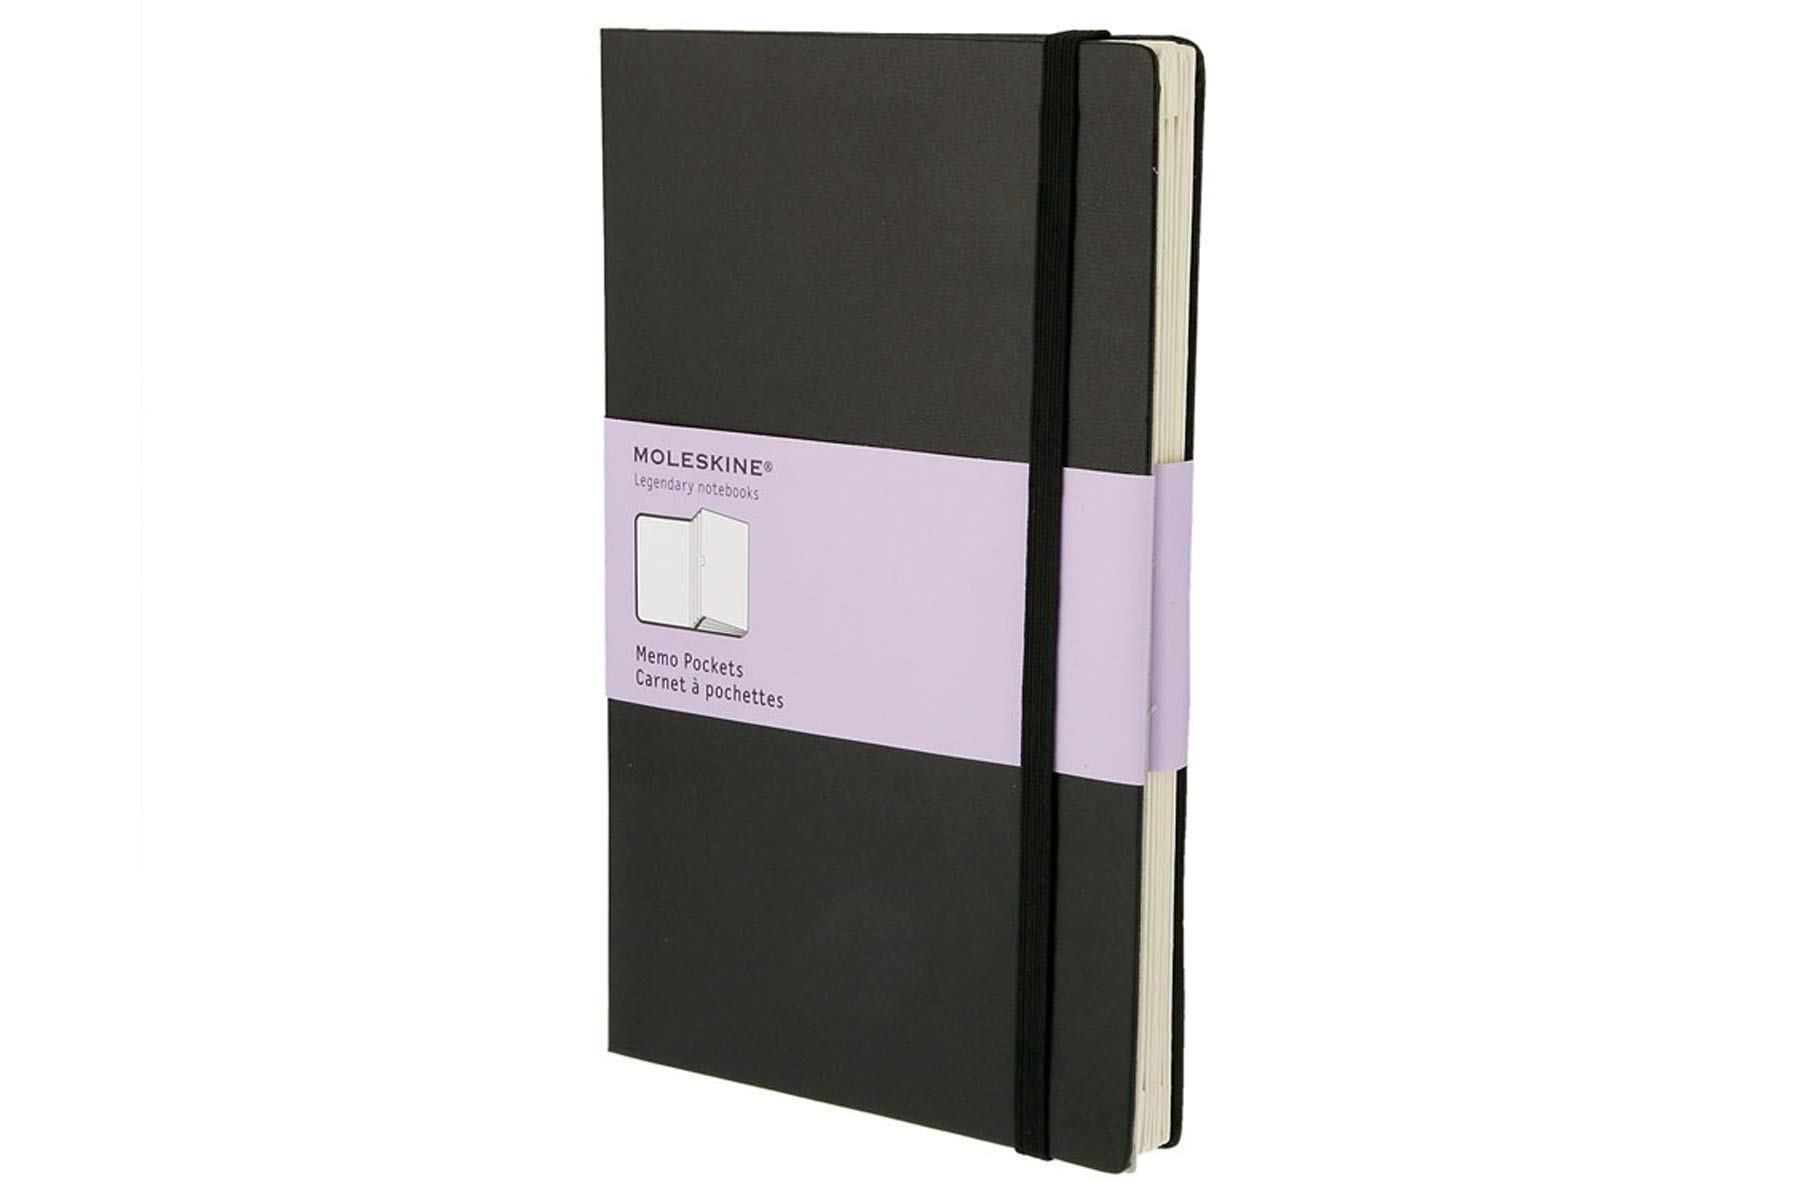 Moleskine Classic Memo Pockets, Large, Black, Hard Cover (5.